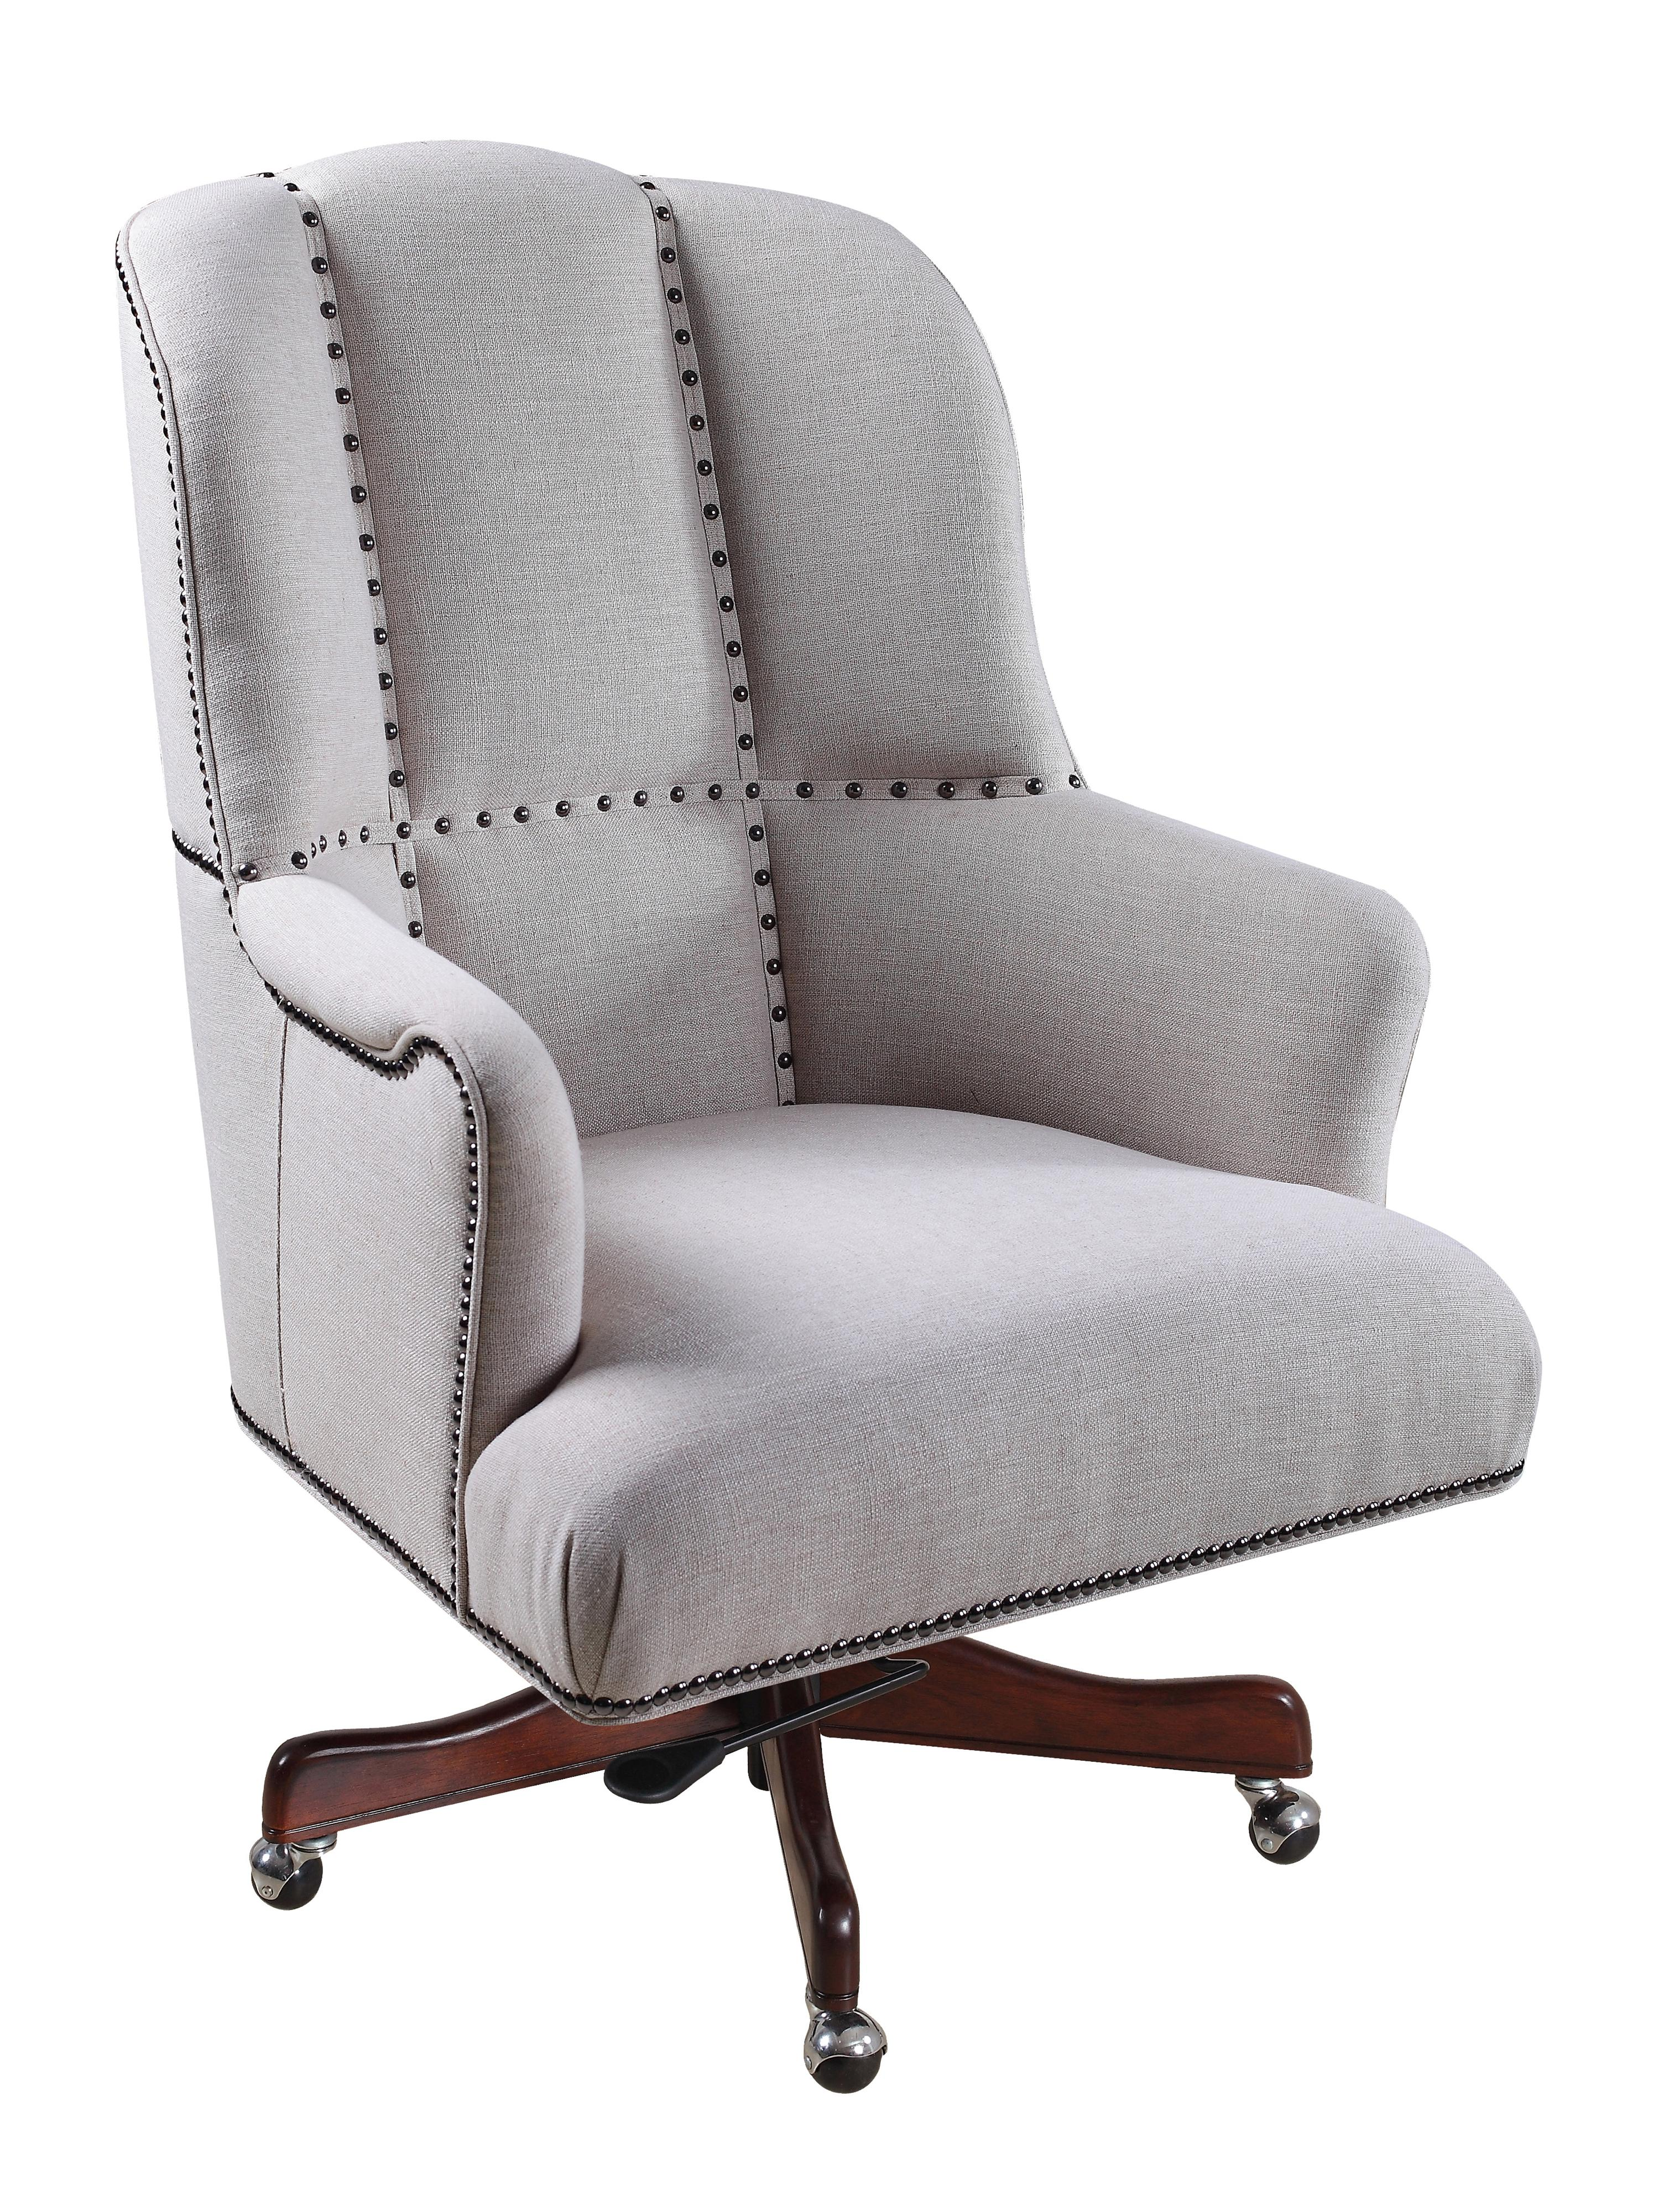 Hooker Furniture Executive Seating Executive Chair - Item Number: EC433-010